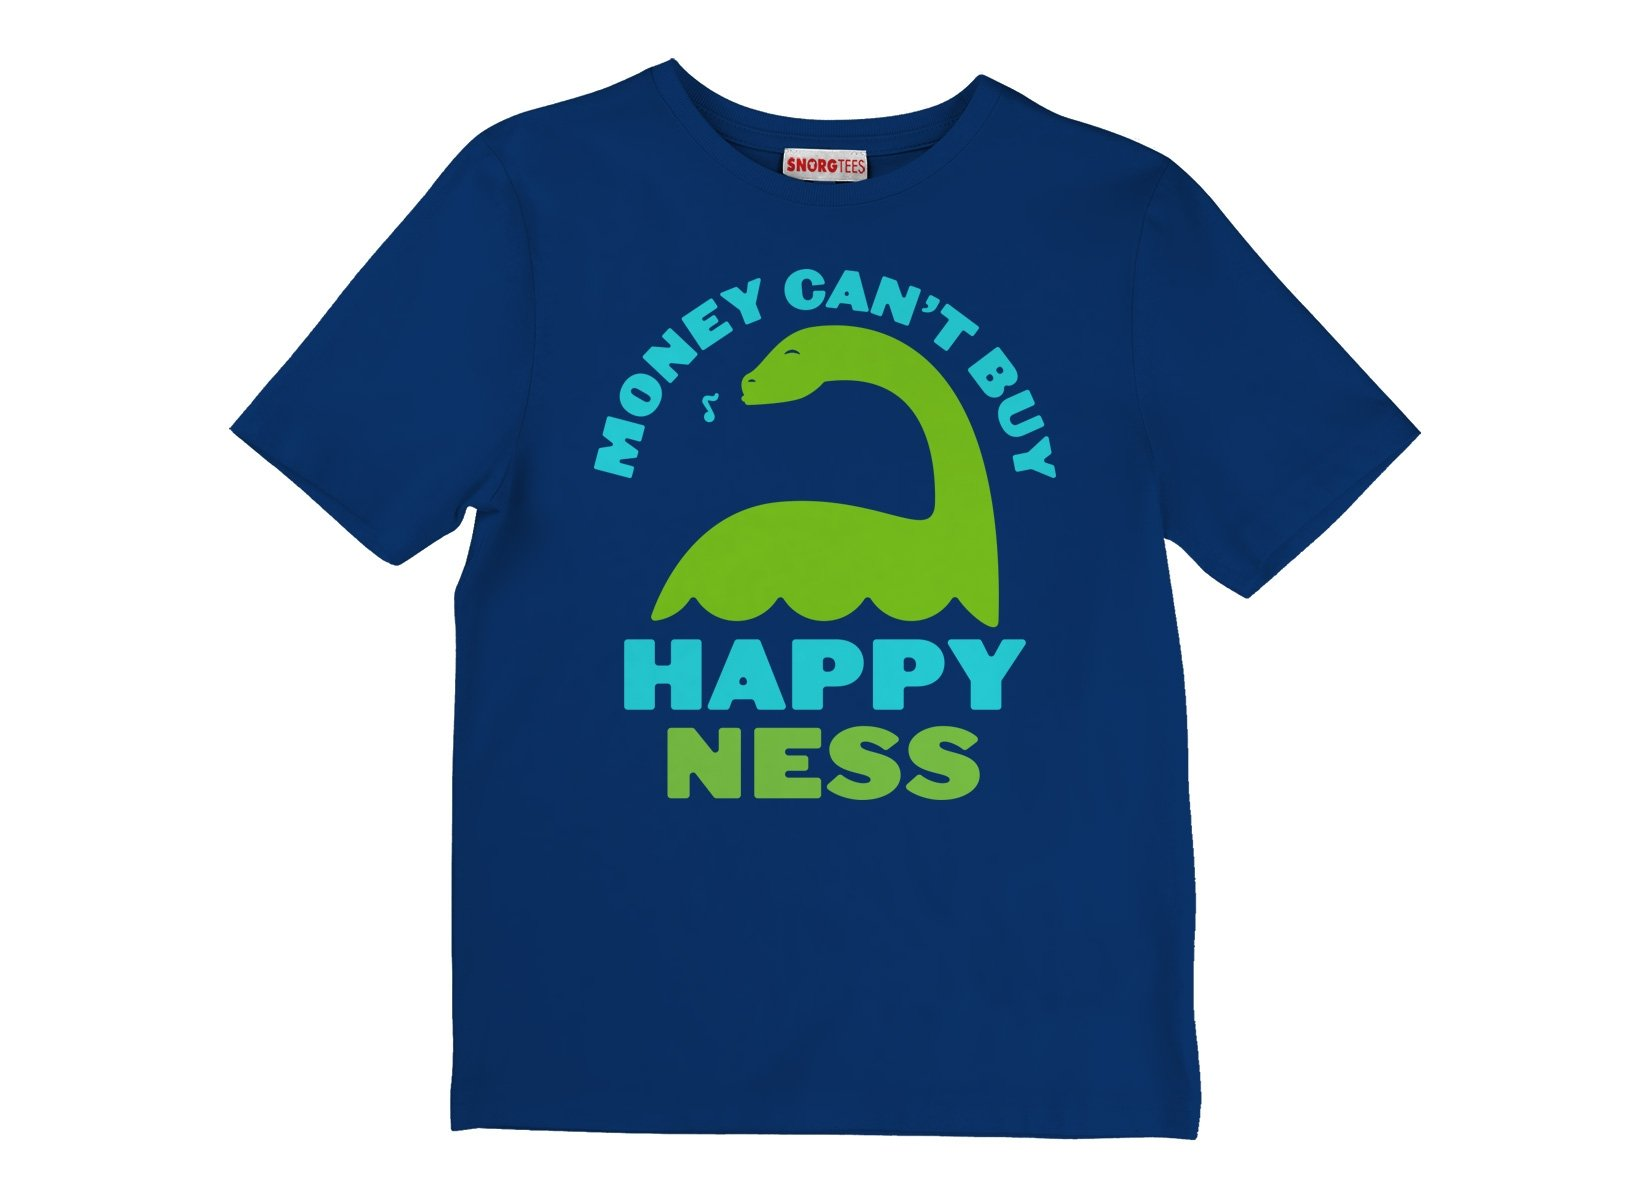 Money Can't Buy Happy Ness on Kids T-Shirt